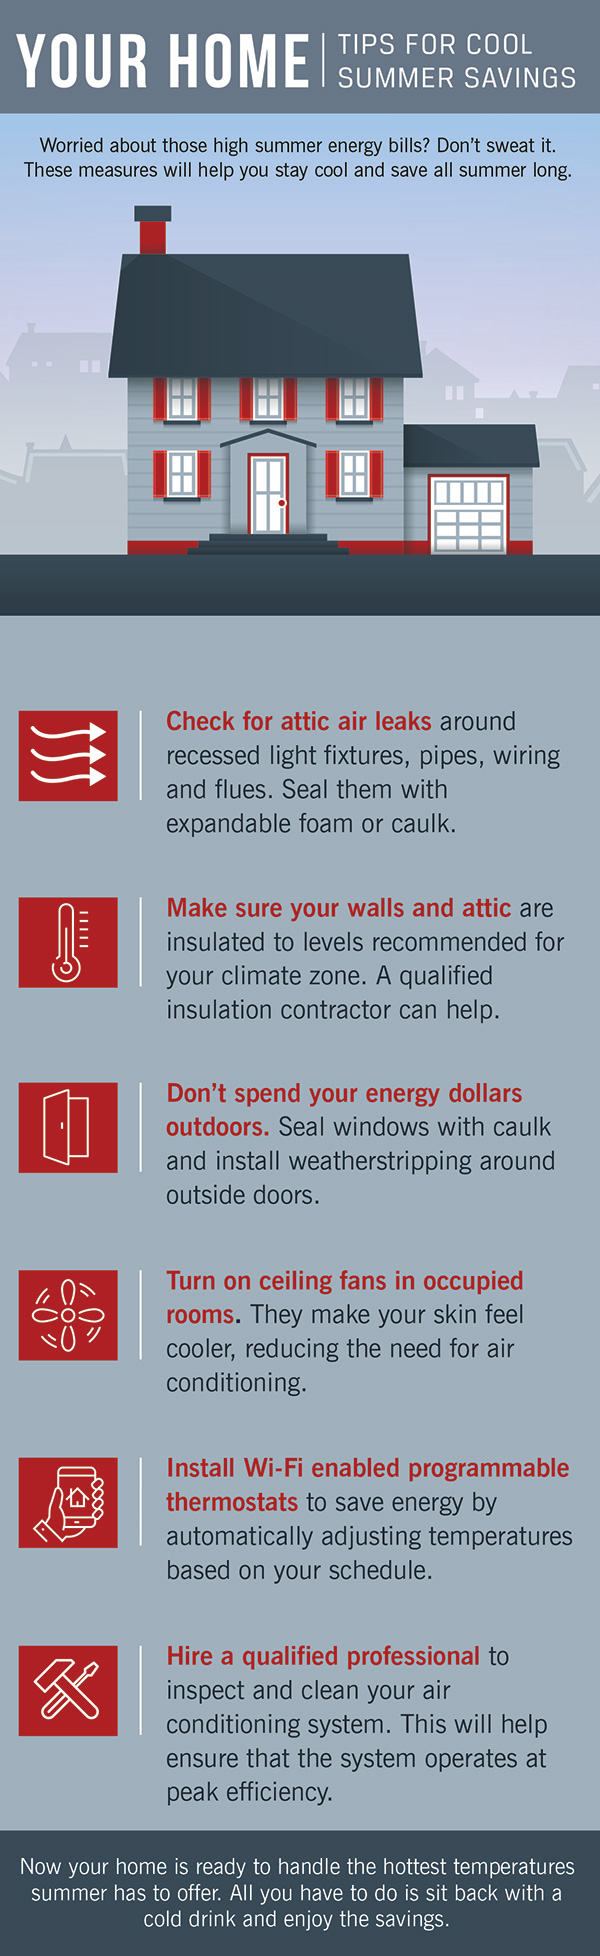 Home Tips For Summer Savings Infographic